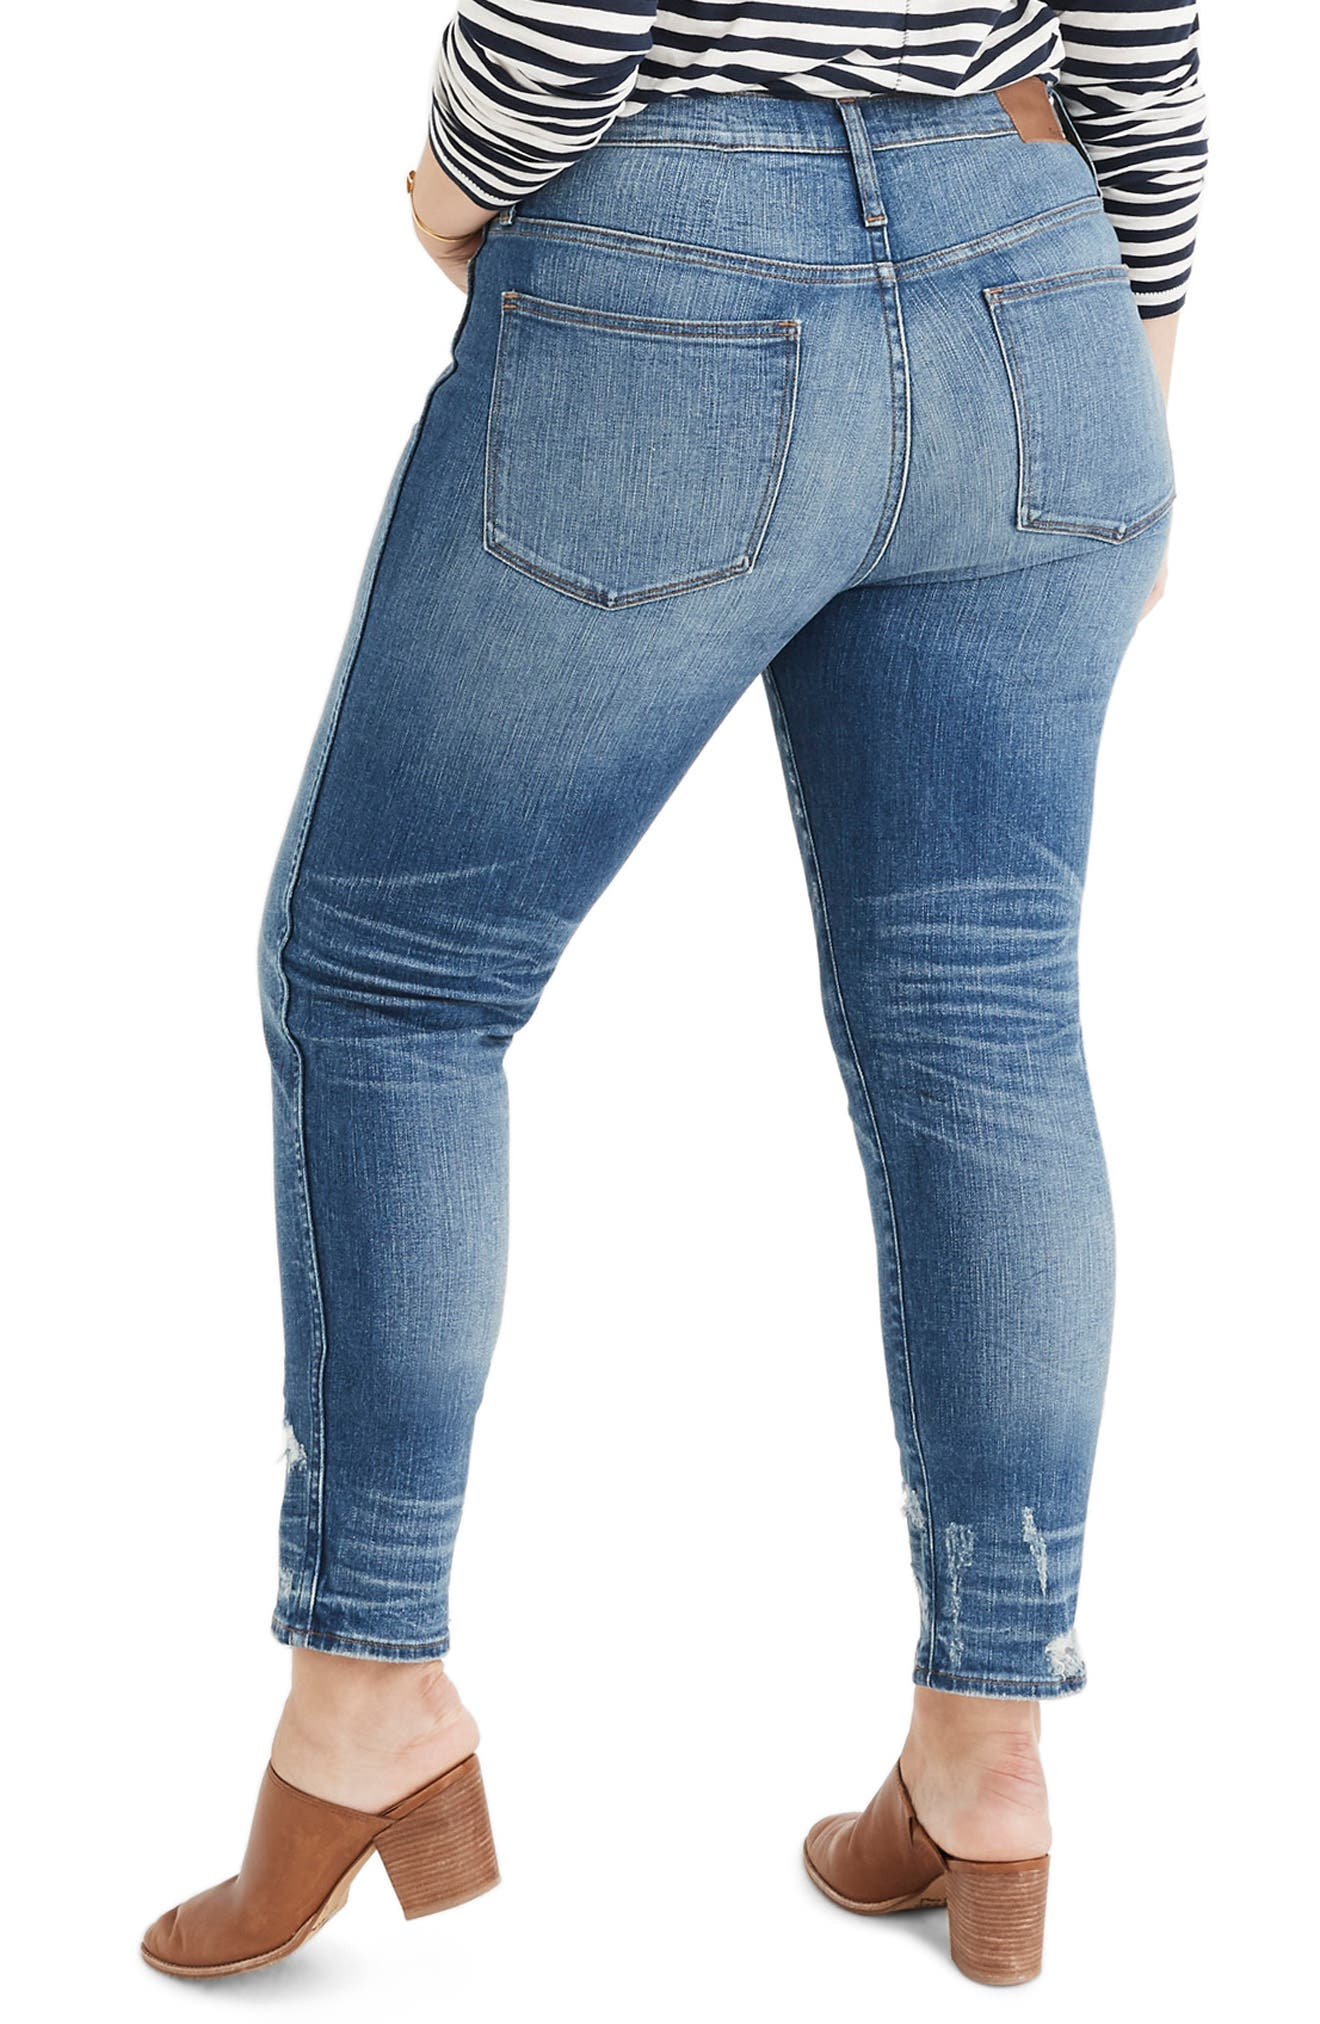 MADEWELL,                             Distressed Button Front High Waist Slim Straight Jeans,                             Alternate thumbnail 8, color,                             CAROLINE